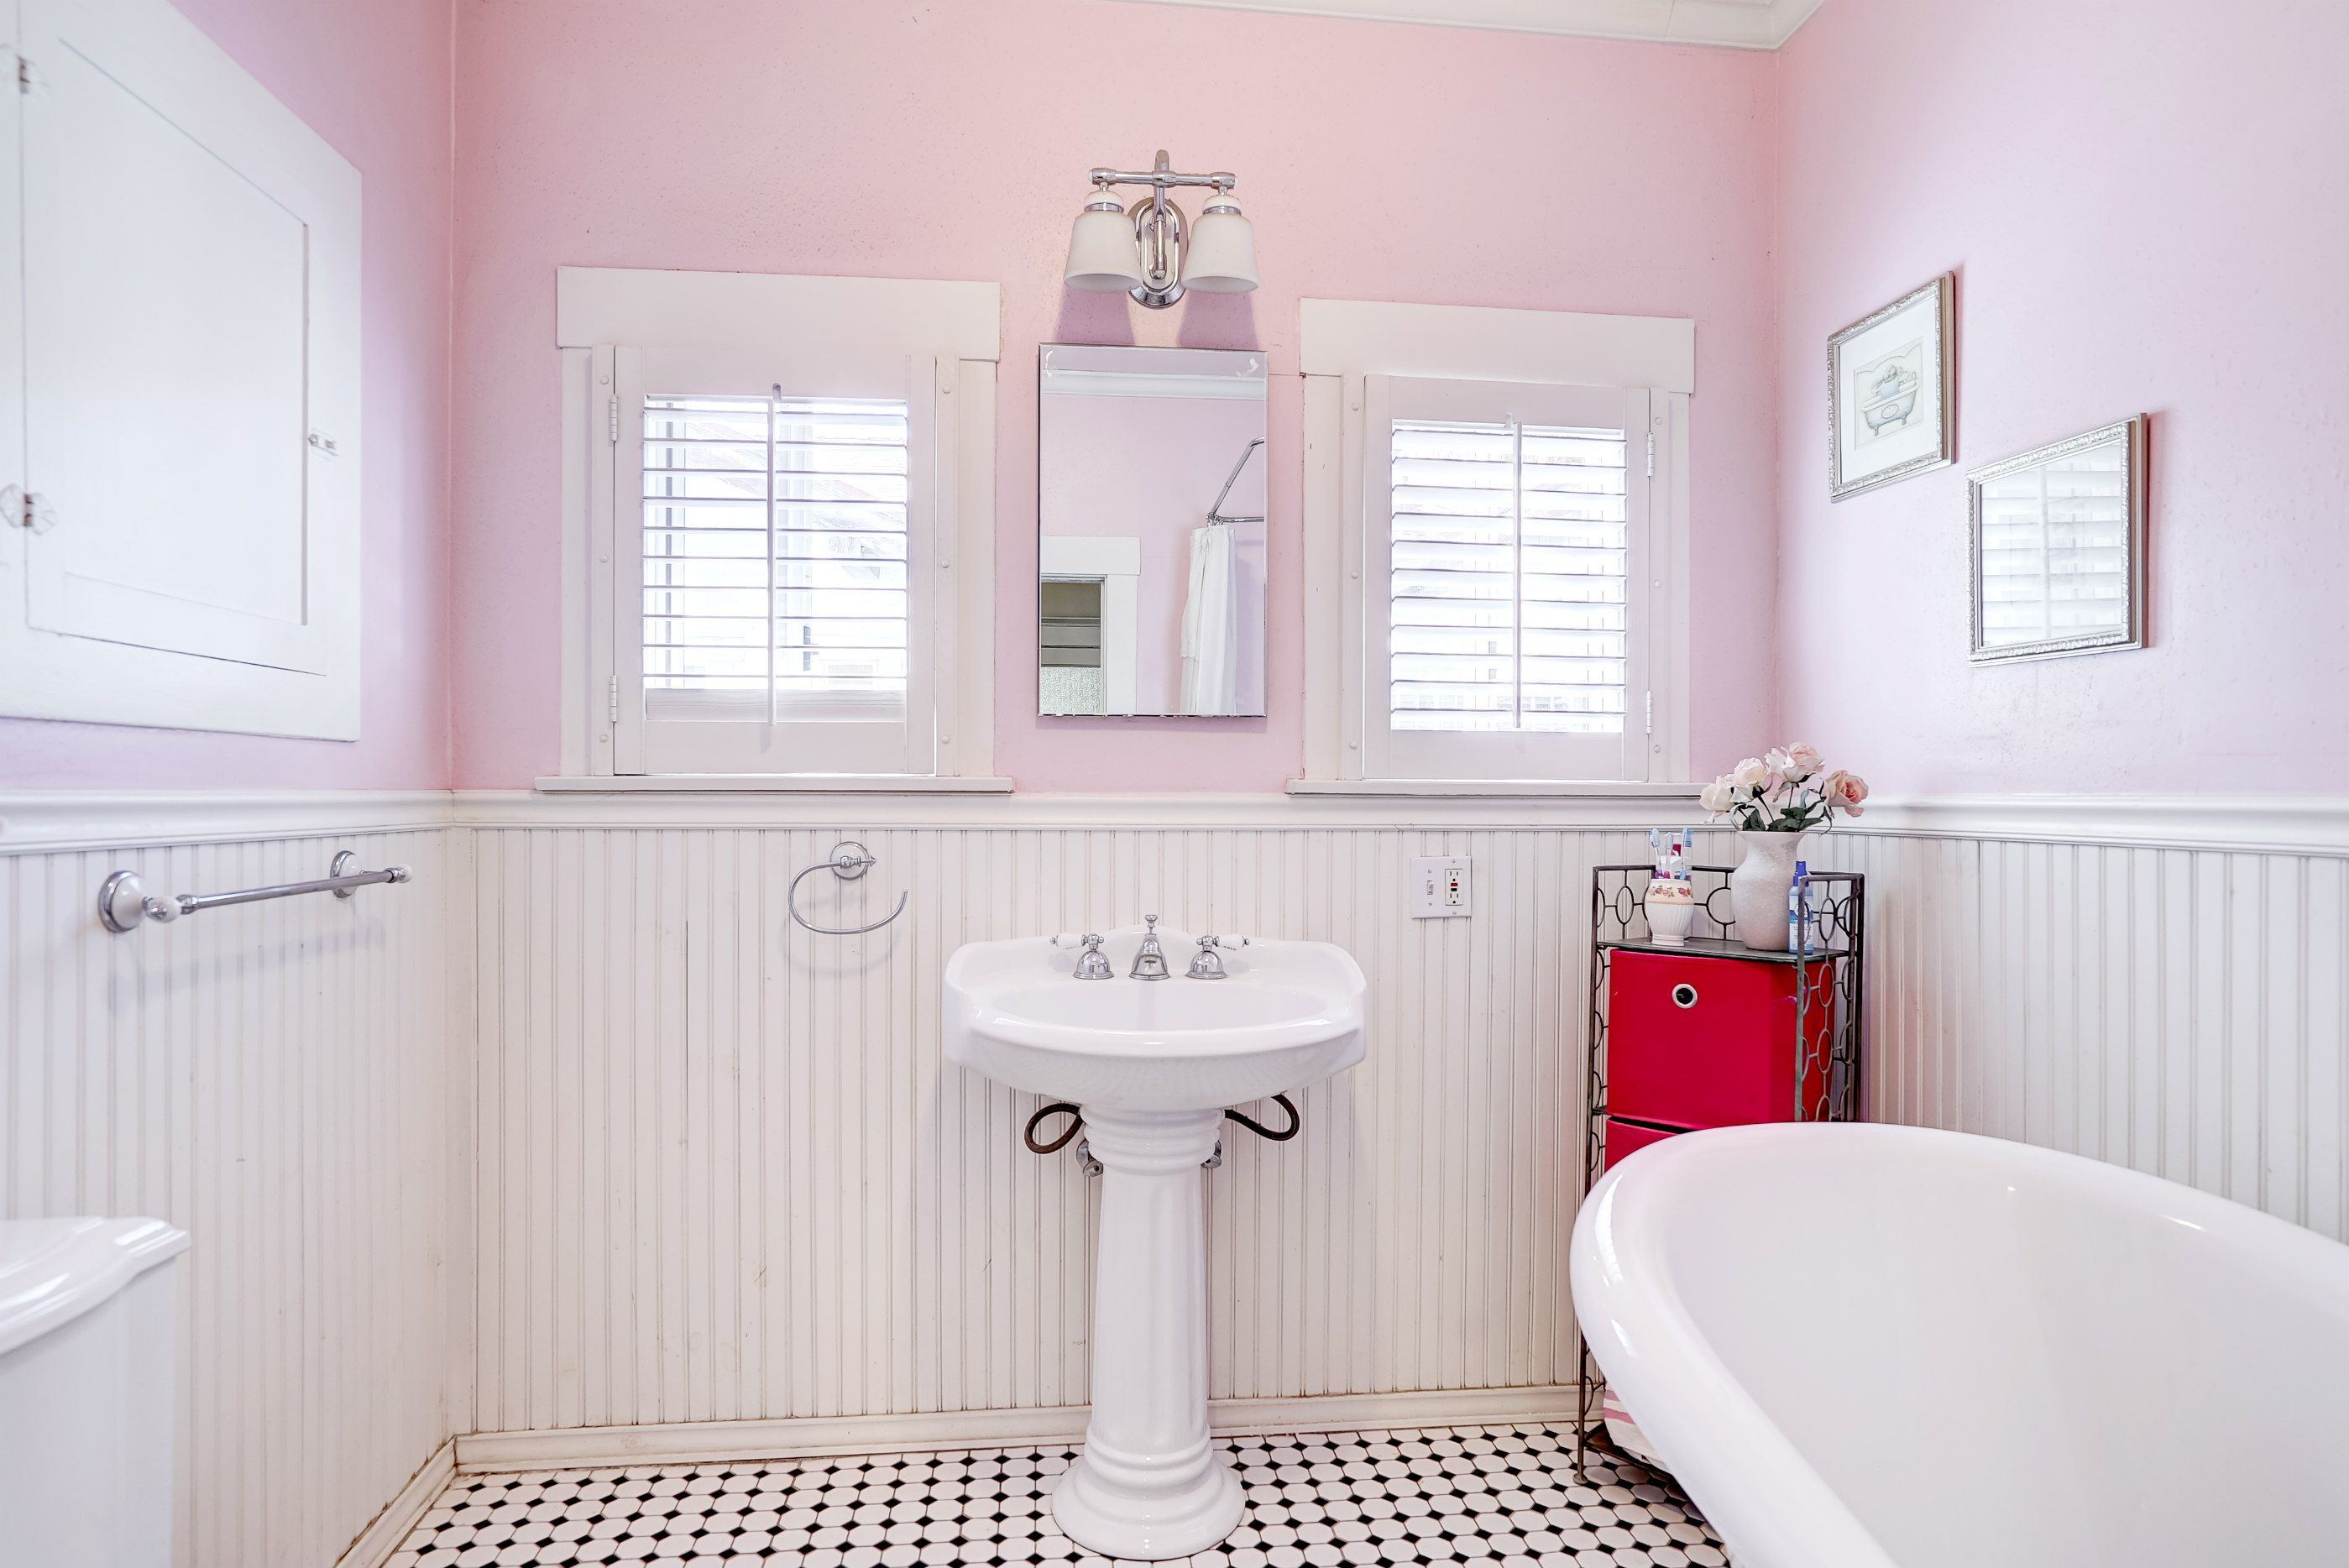 Remodeled hallway bathroom with tile floor and claw foot tub.